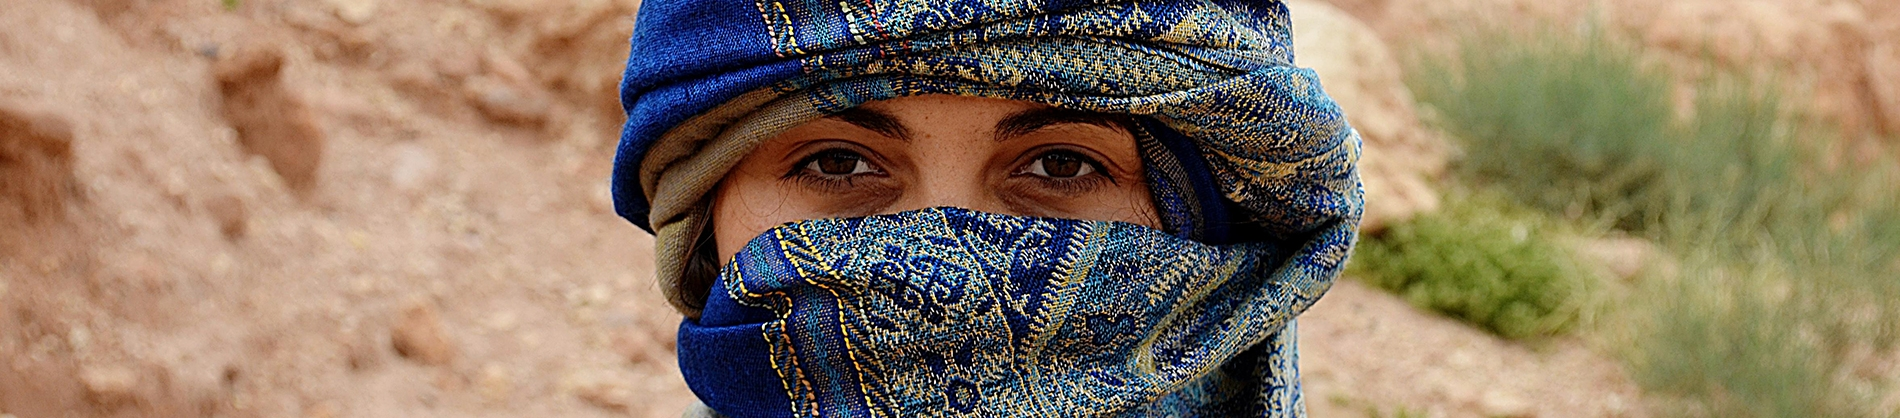 A women wearing a blue head scarf stood in the desert